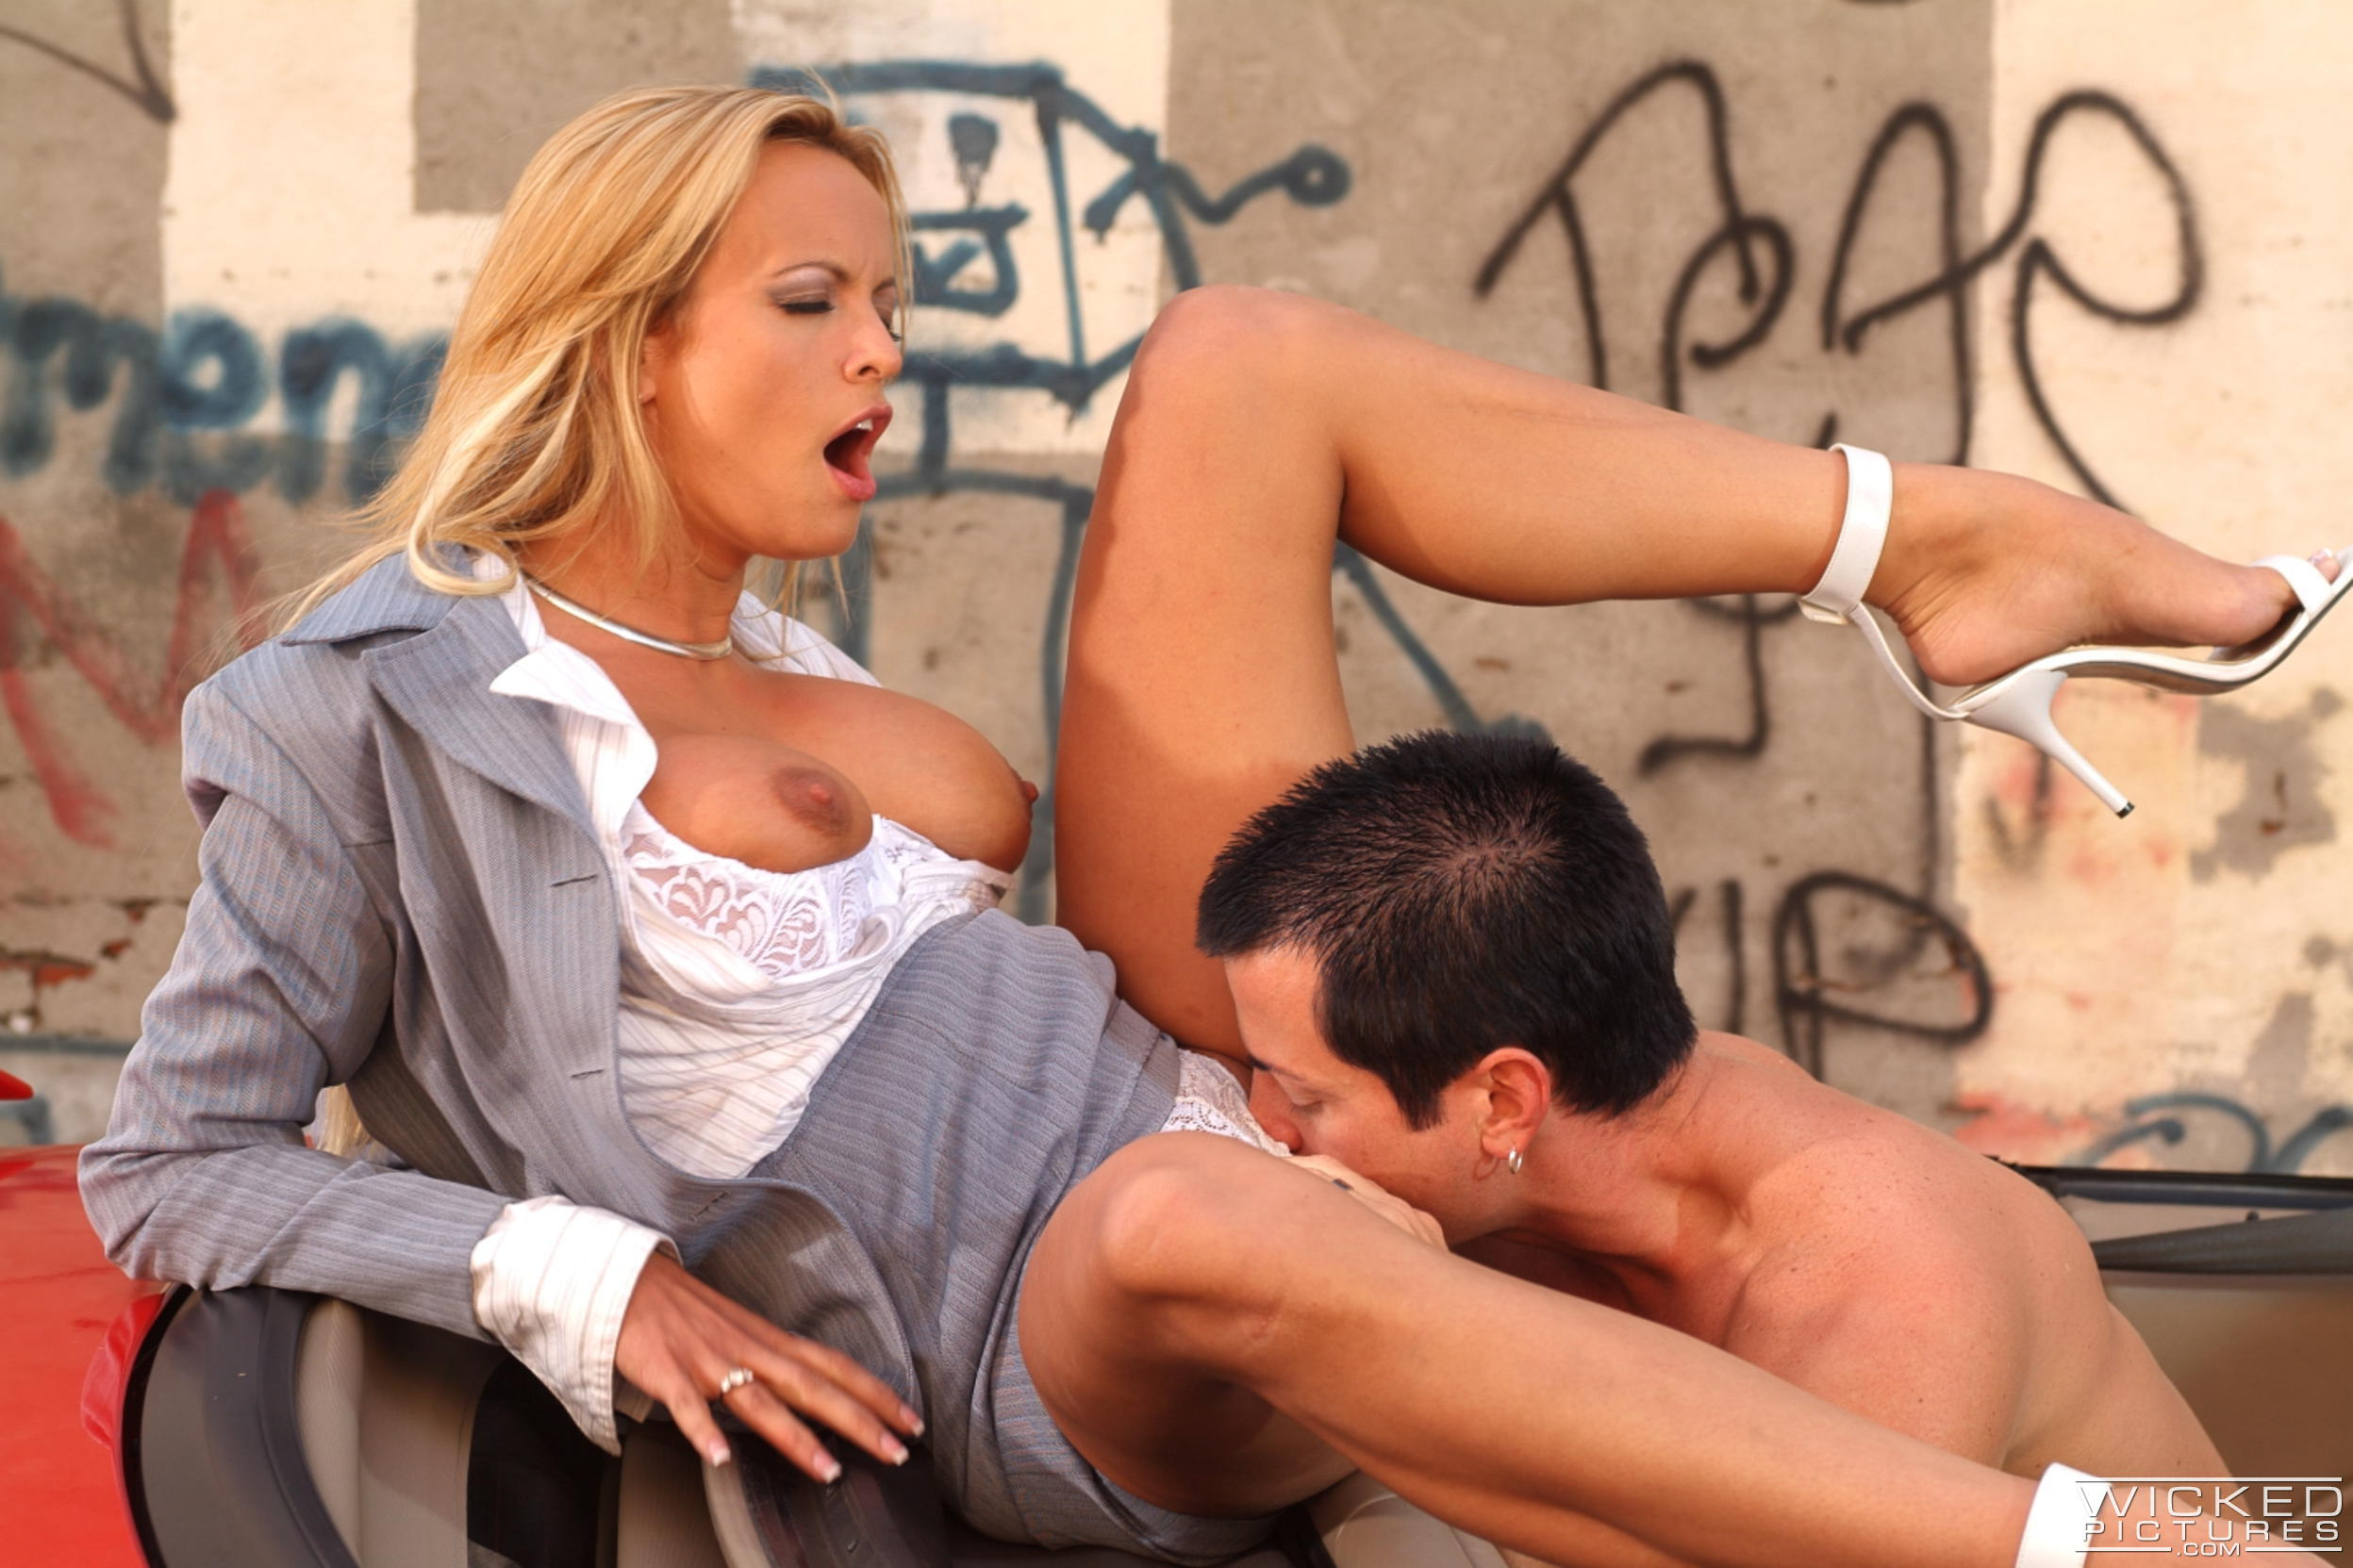 Wicked 'The Closer Scene 2' starring Stormy Daniels (Photo 21)